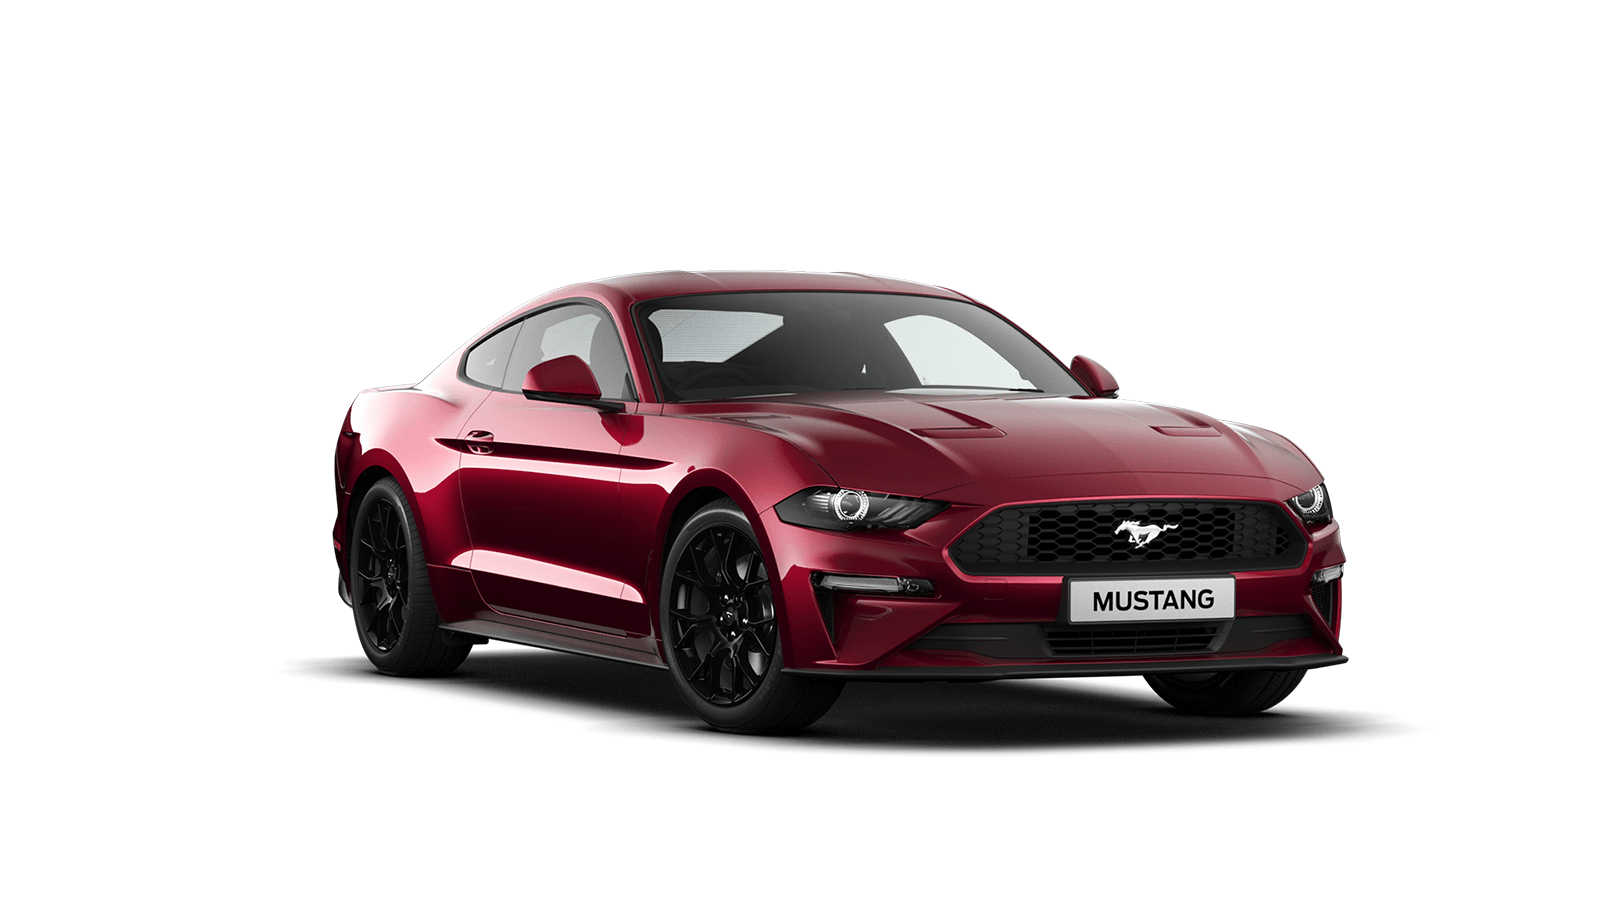 NEW MUSTANG 2.3 EcoBoost Fastback in Ruby Red